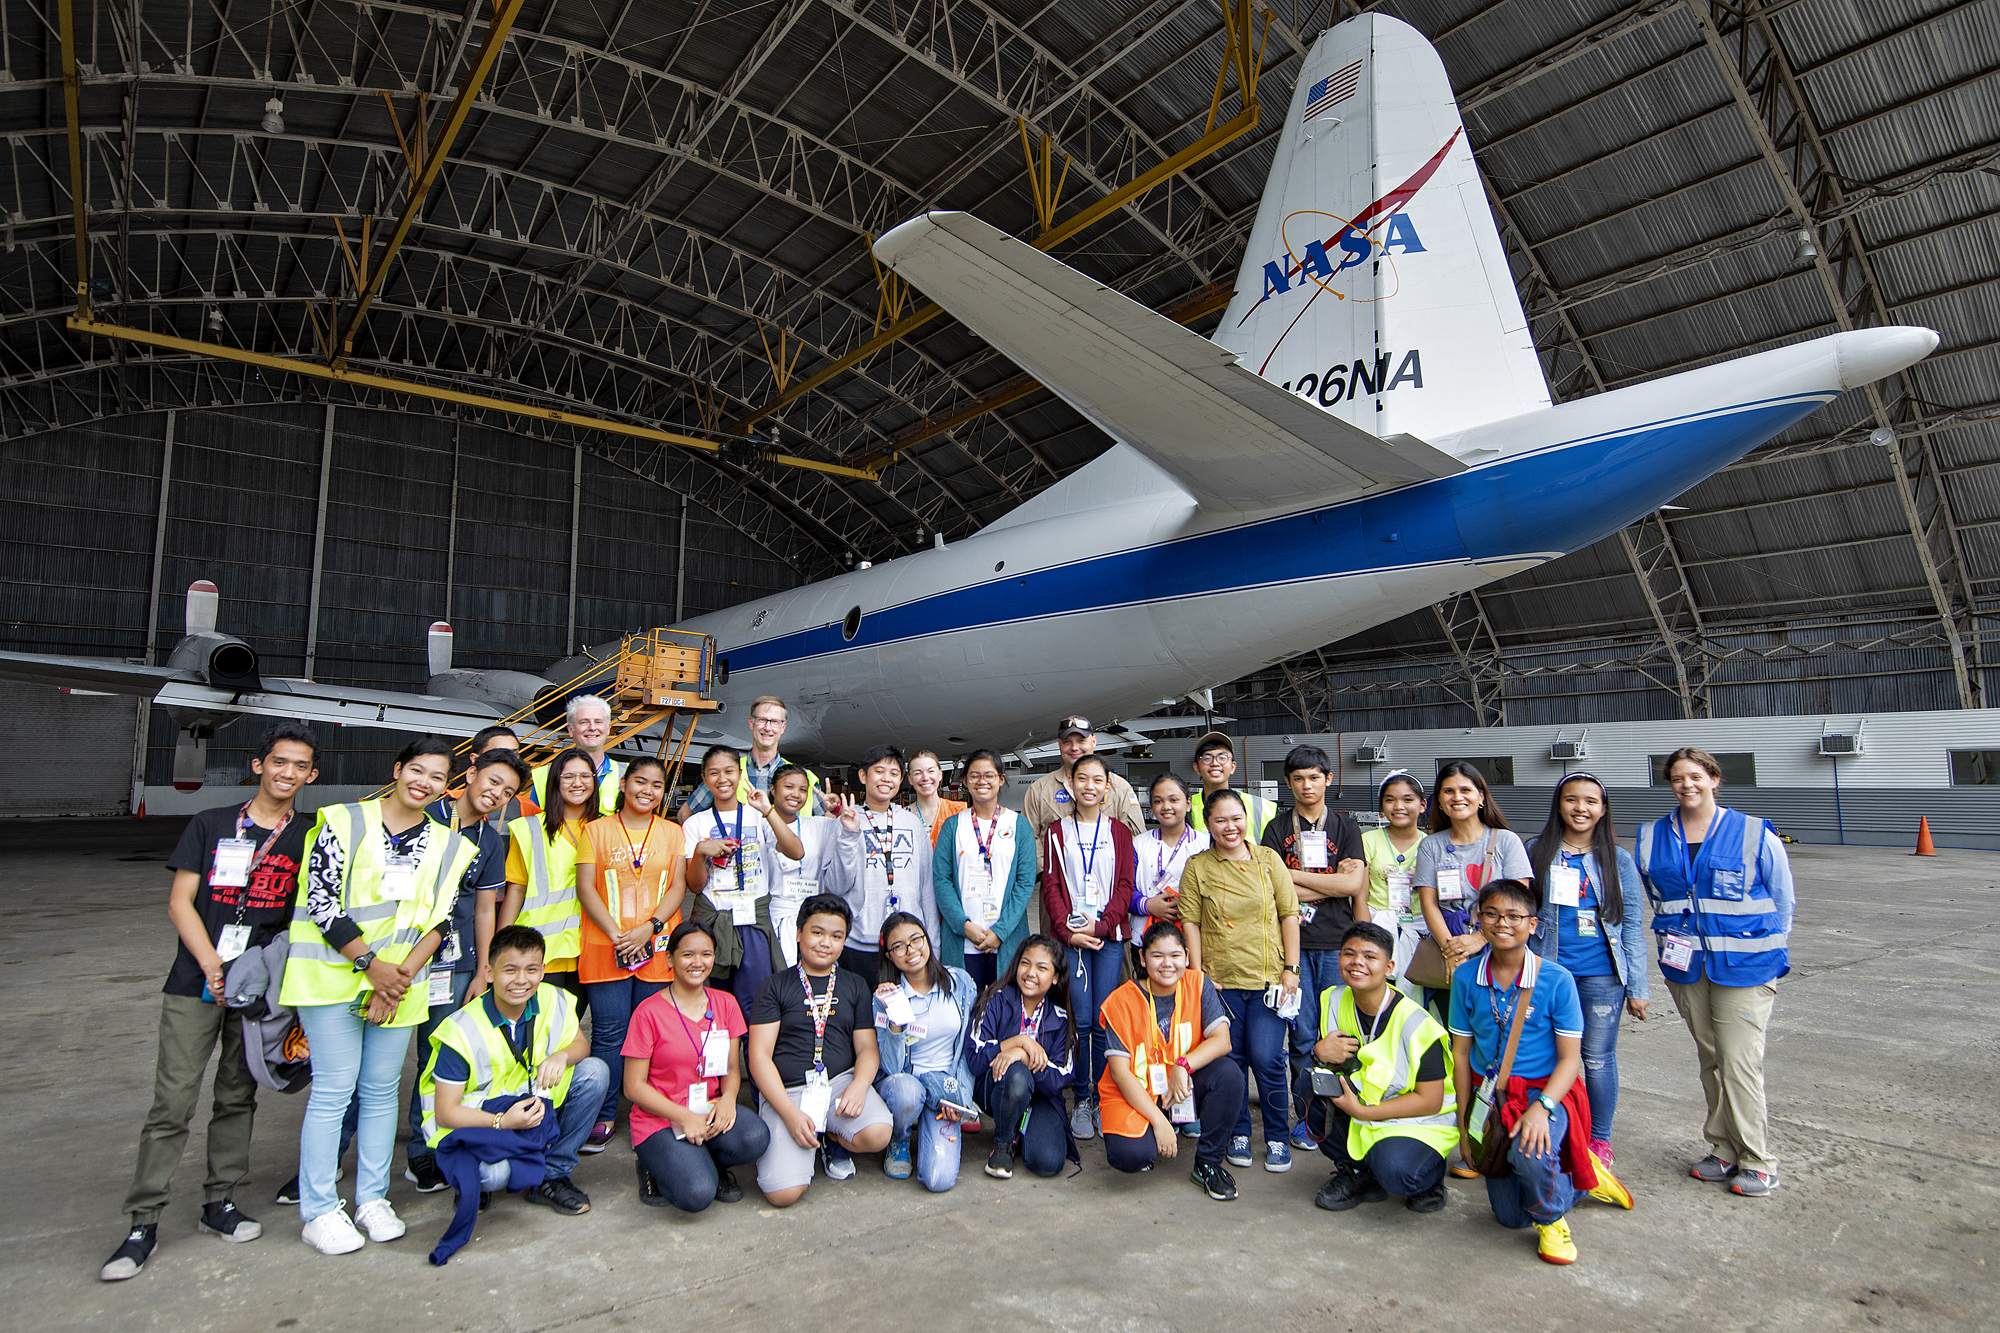 Students and teachers from Batasan Hills National High School and Bagong Silangan High School pose by the NASA P-3 aircraft after their tour of the NASA hangar at Clark International Airport, Philippines, on 14 September 2019.